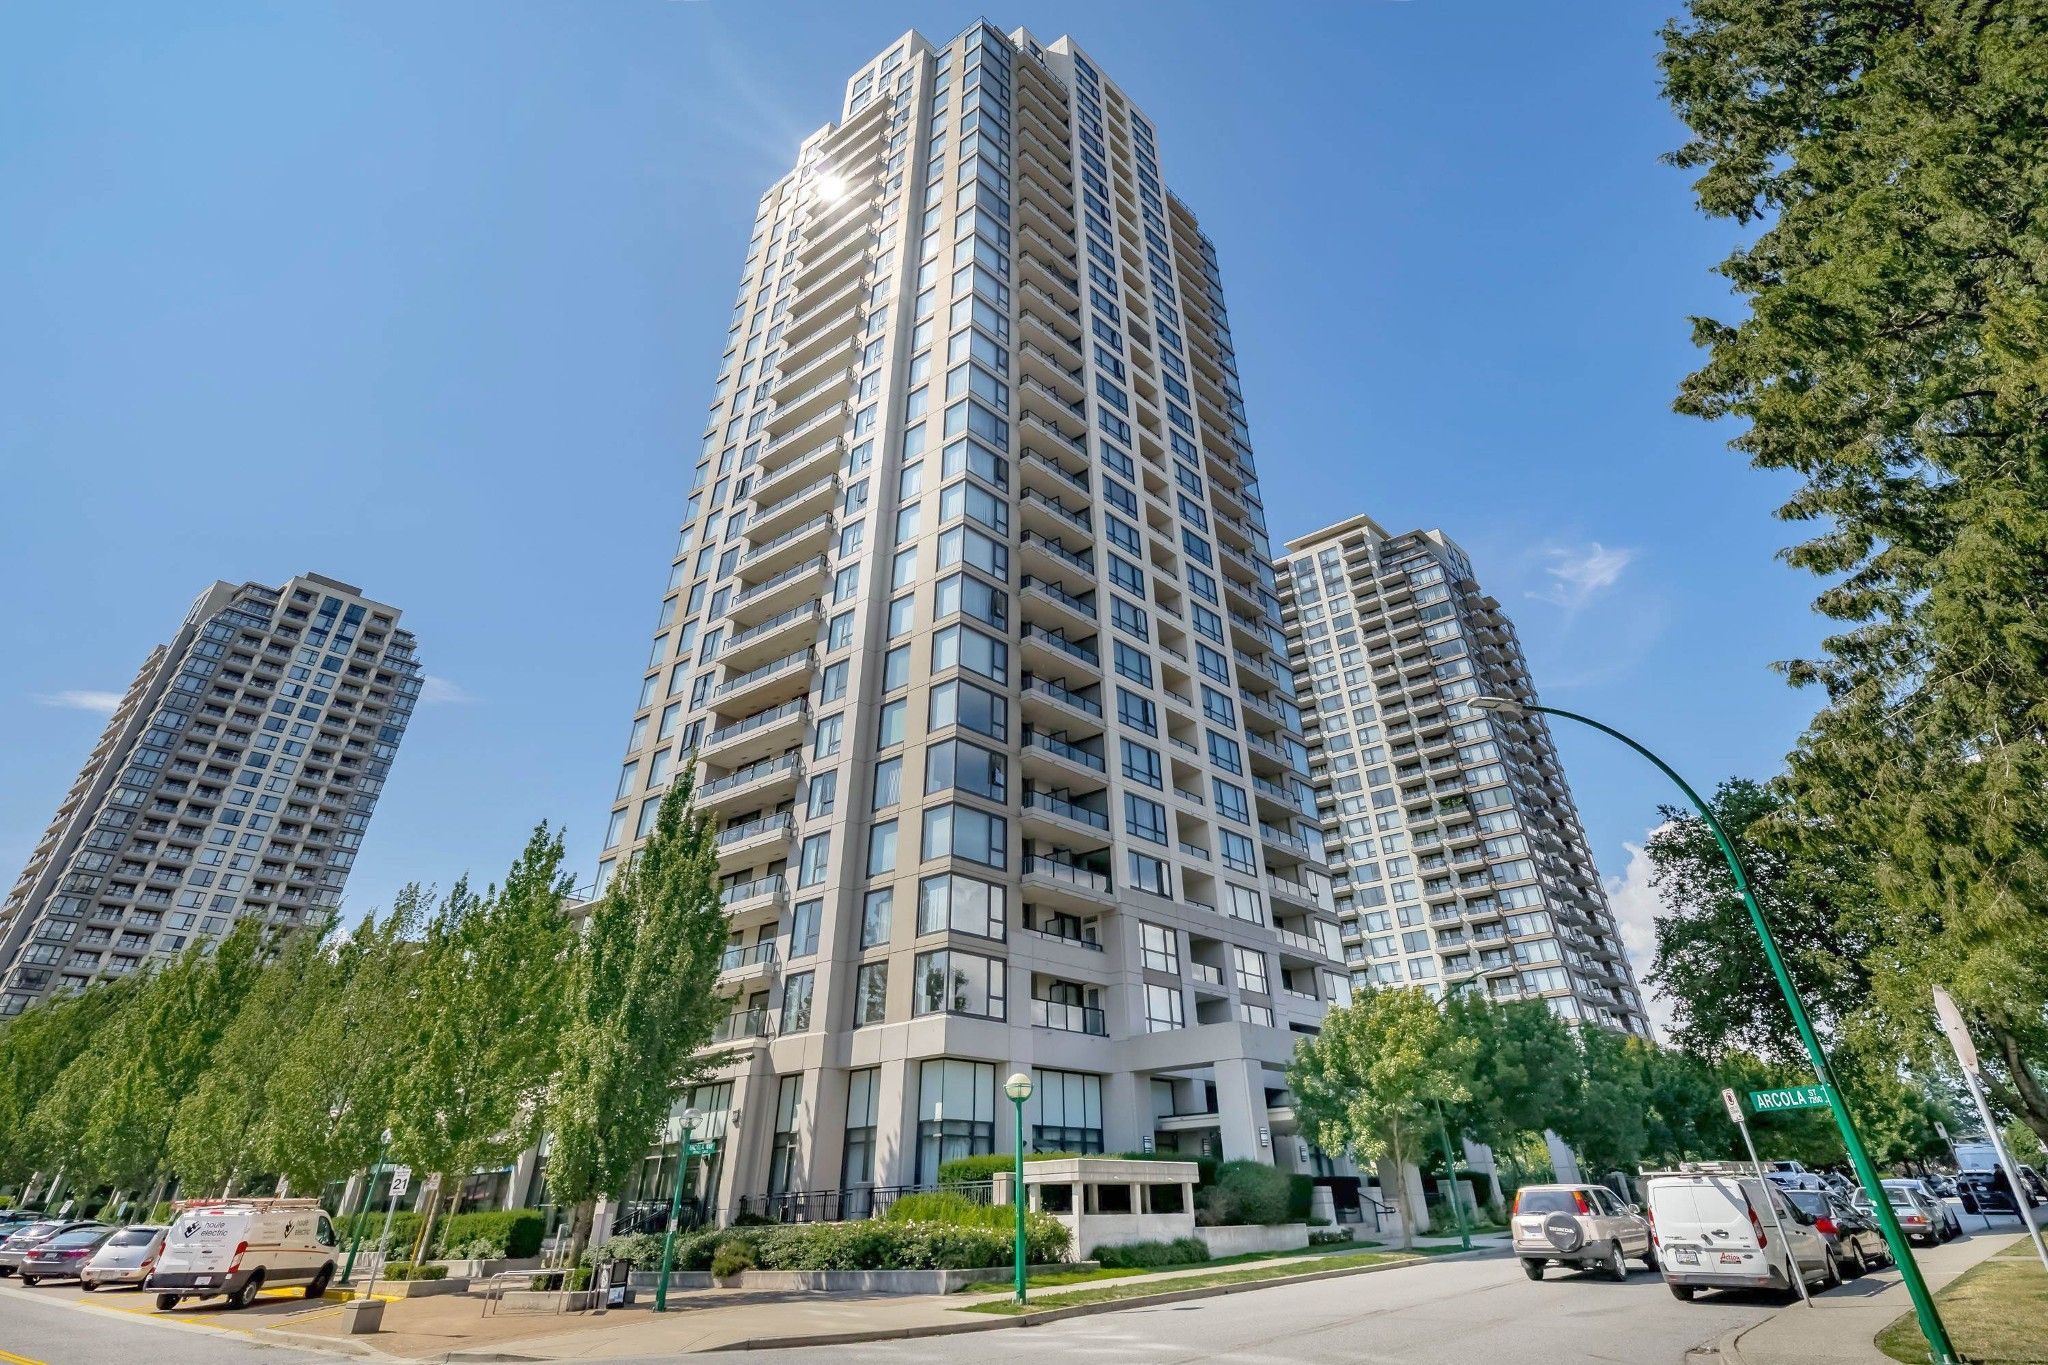 """Main Photo: 206 7063 HALL Avenue in Burnaby: Highgate Condo for sale in """"EMERSON at Highgate Village"""" (Burnaby South)  : MLS®# R2389520"""